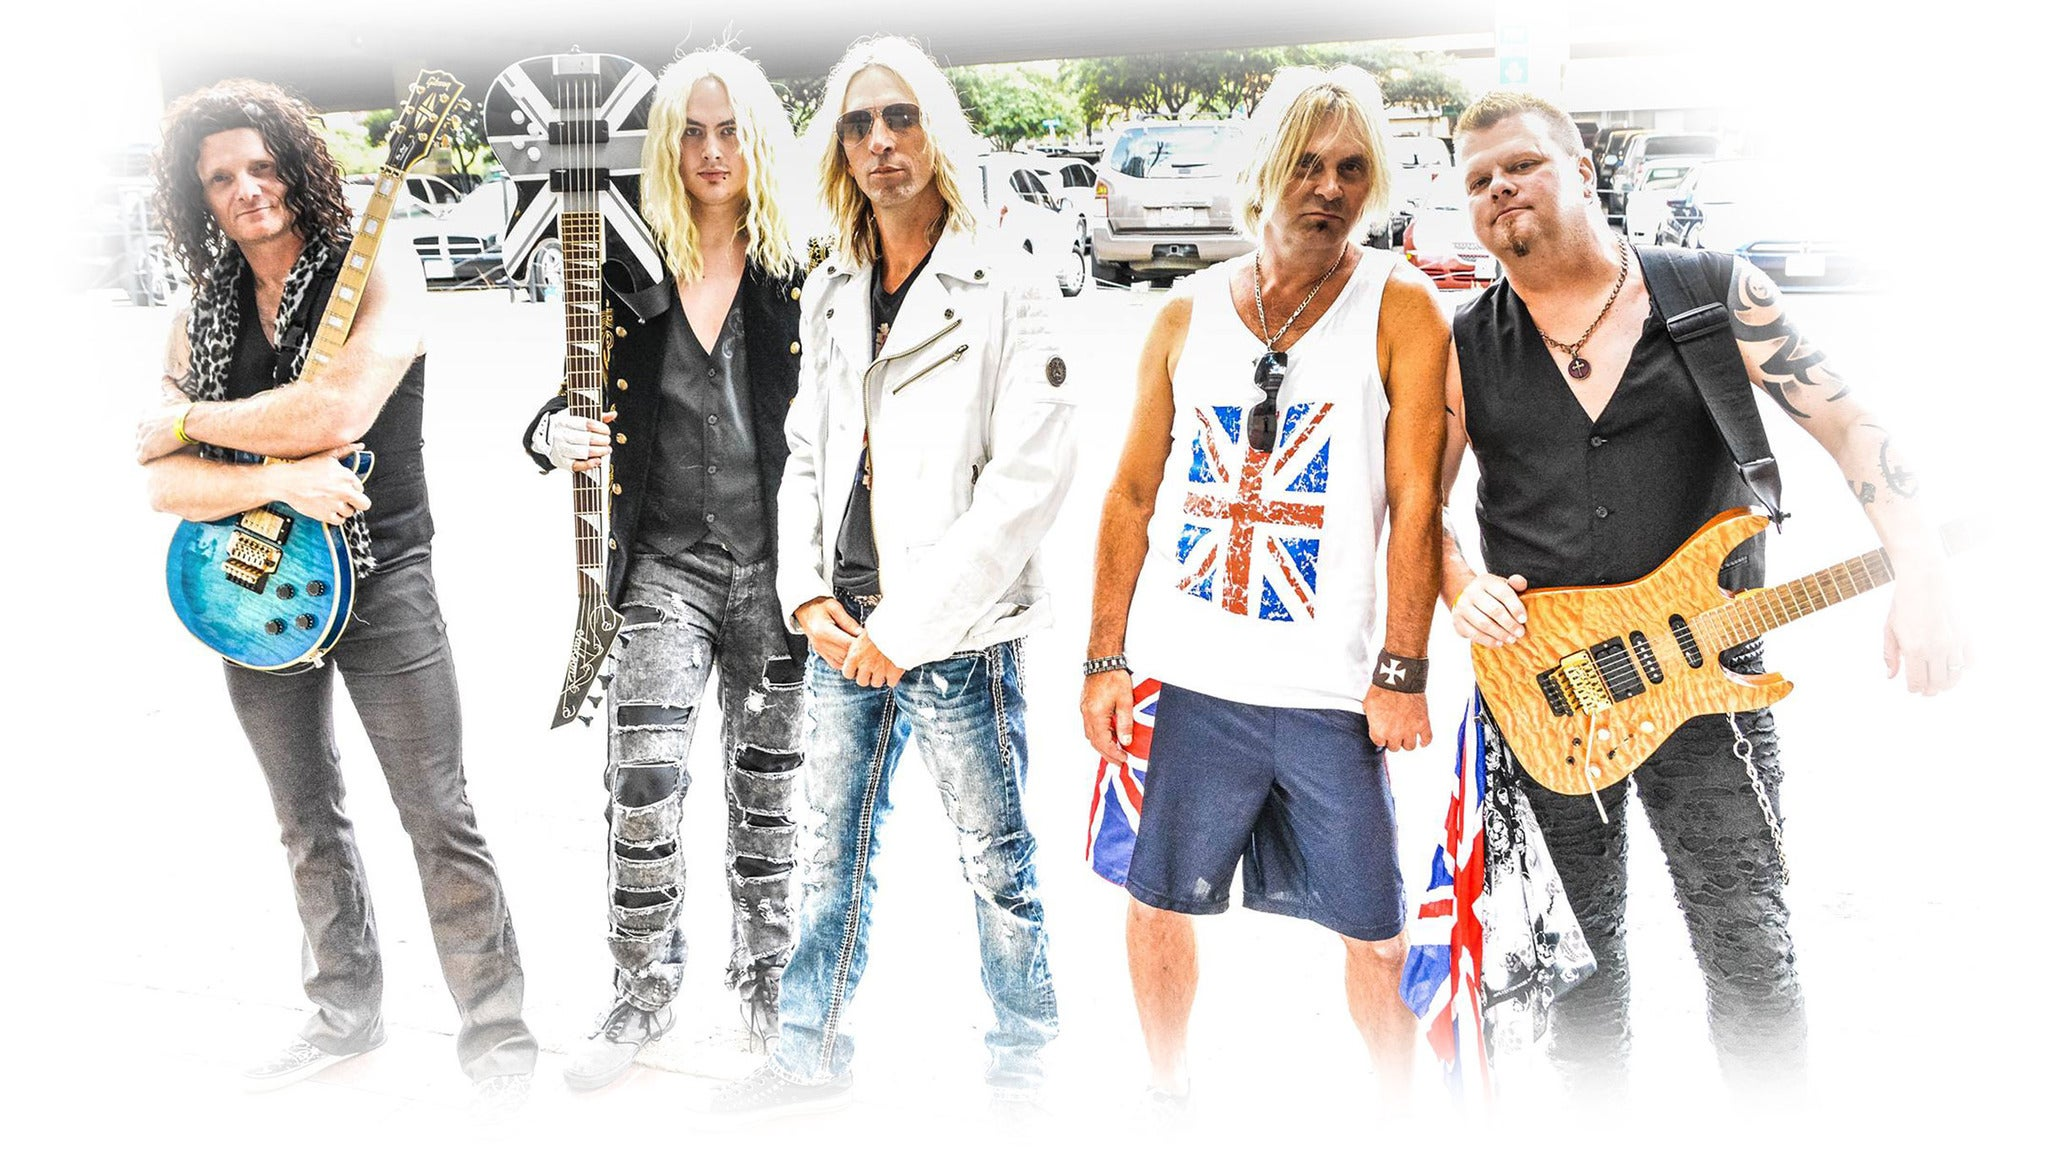 Def Leggend: The World's Greatest Def Leppard Tribute